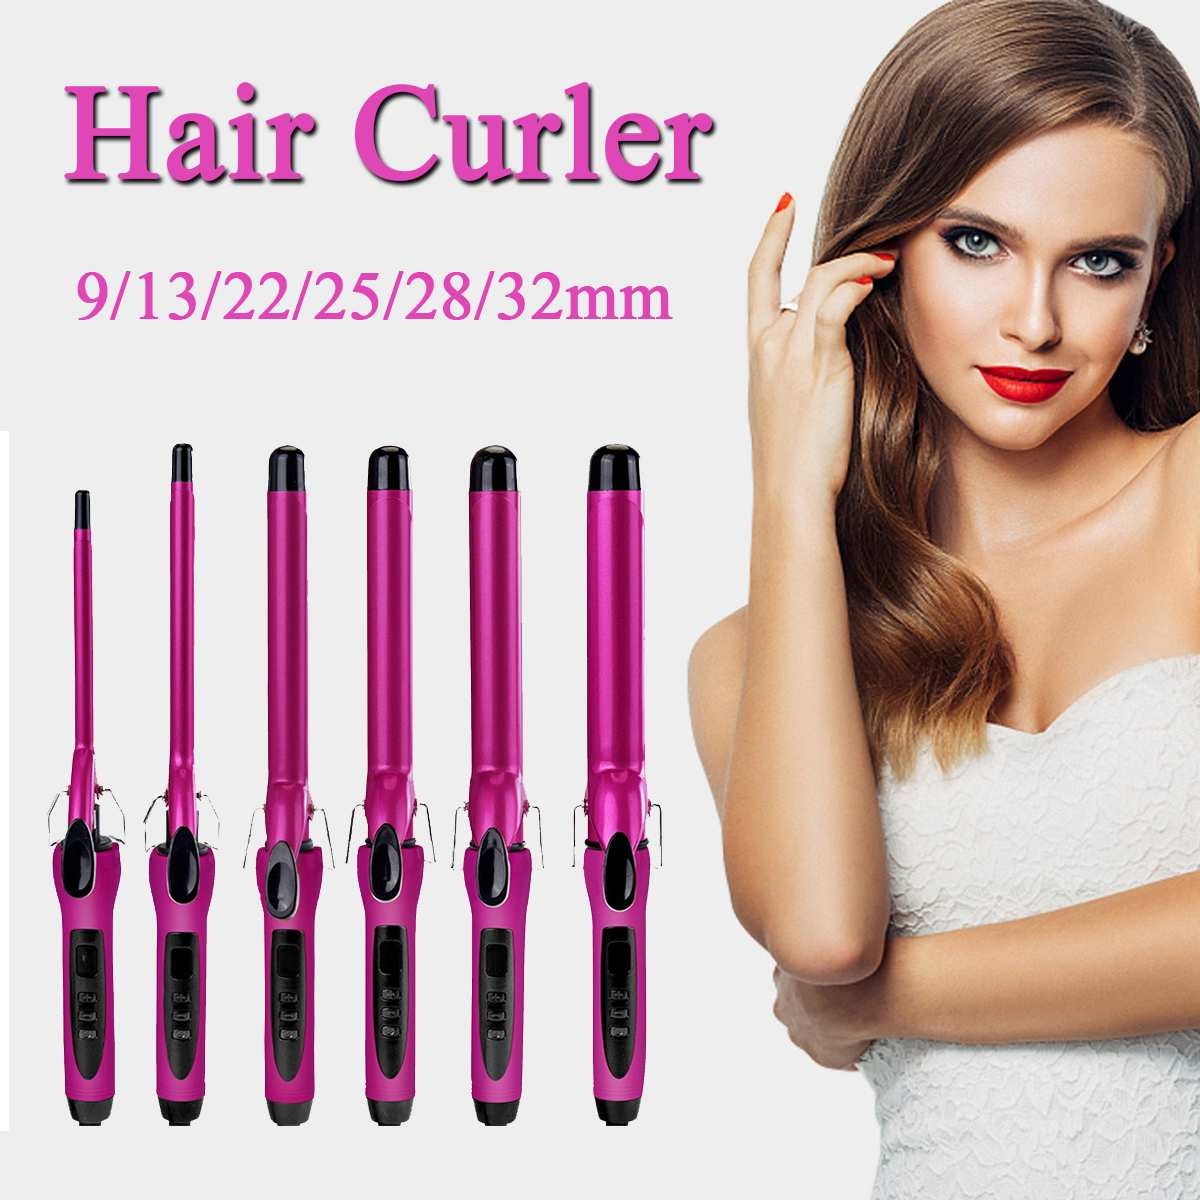 9/13/22/25/28/32mm Professional Hair Curling Iron Ceramic Hair Curler Quick Heat Curling Hair Waver Styling Tool 80~210 LED9/13/22/25/28/32mm Professional Hair Curling Iron Ceramic Hair Curler Quick Heat Curling Hair Waver Styling Tool 80~210 LED